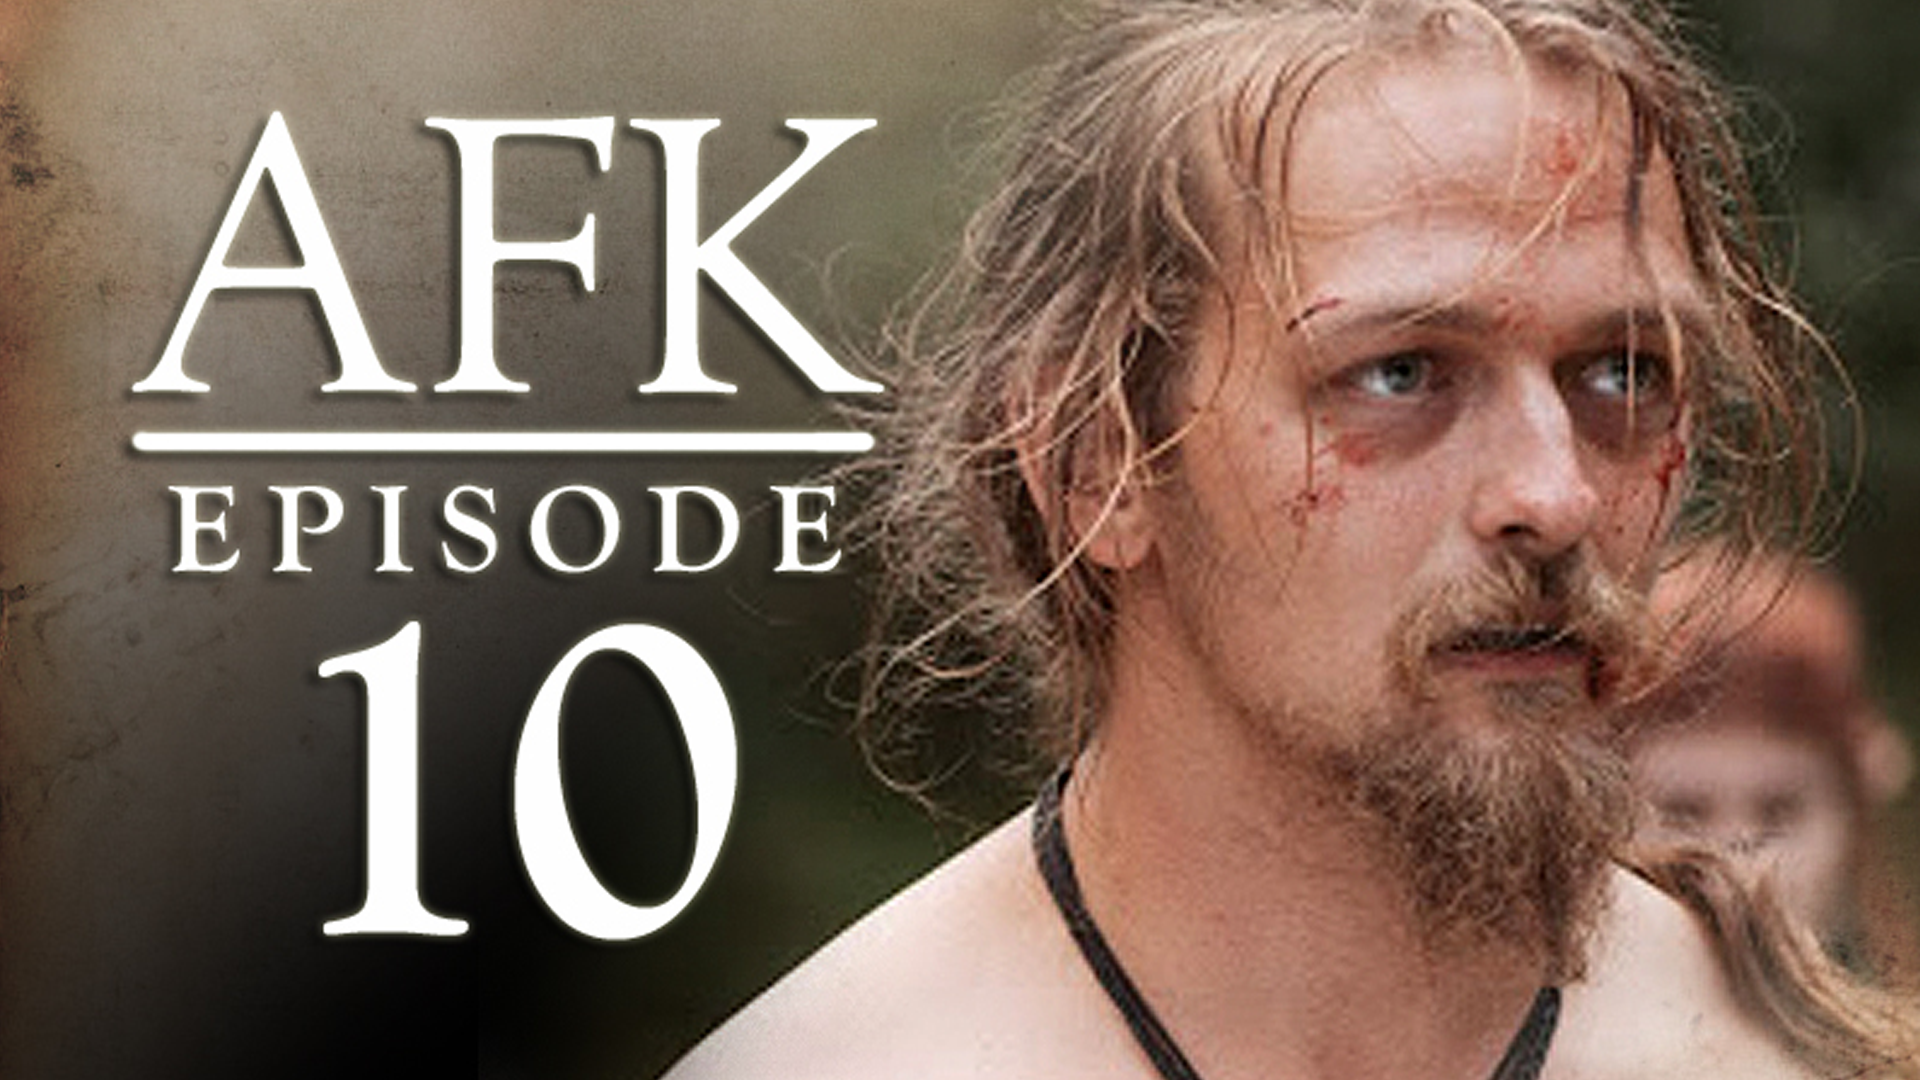 AFK Season 1 Episode 10 NPC